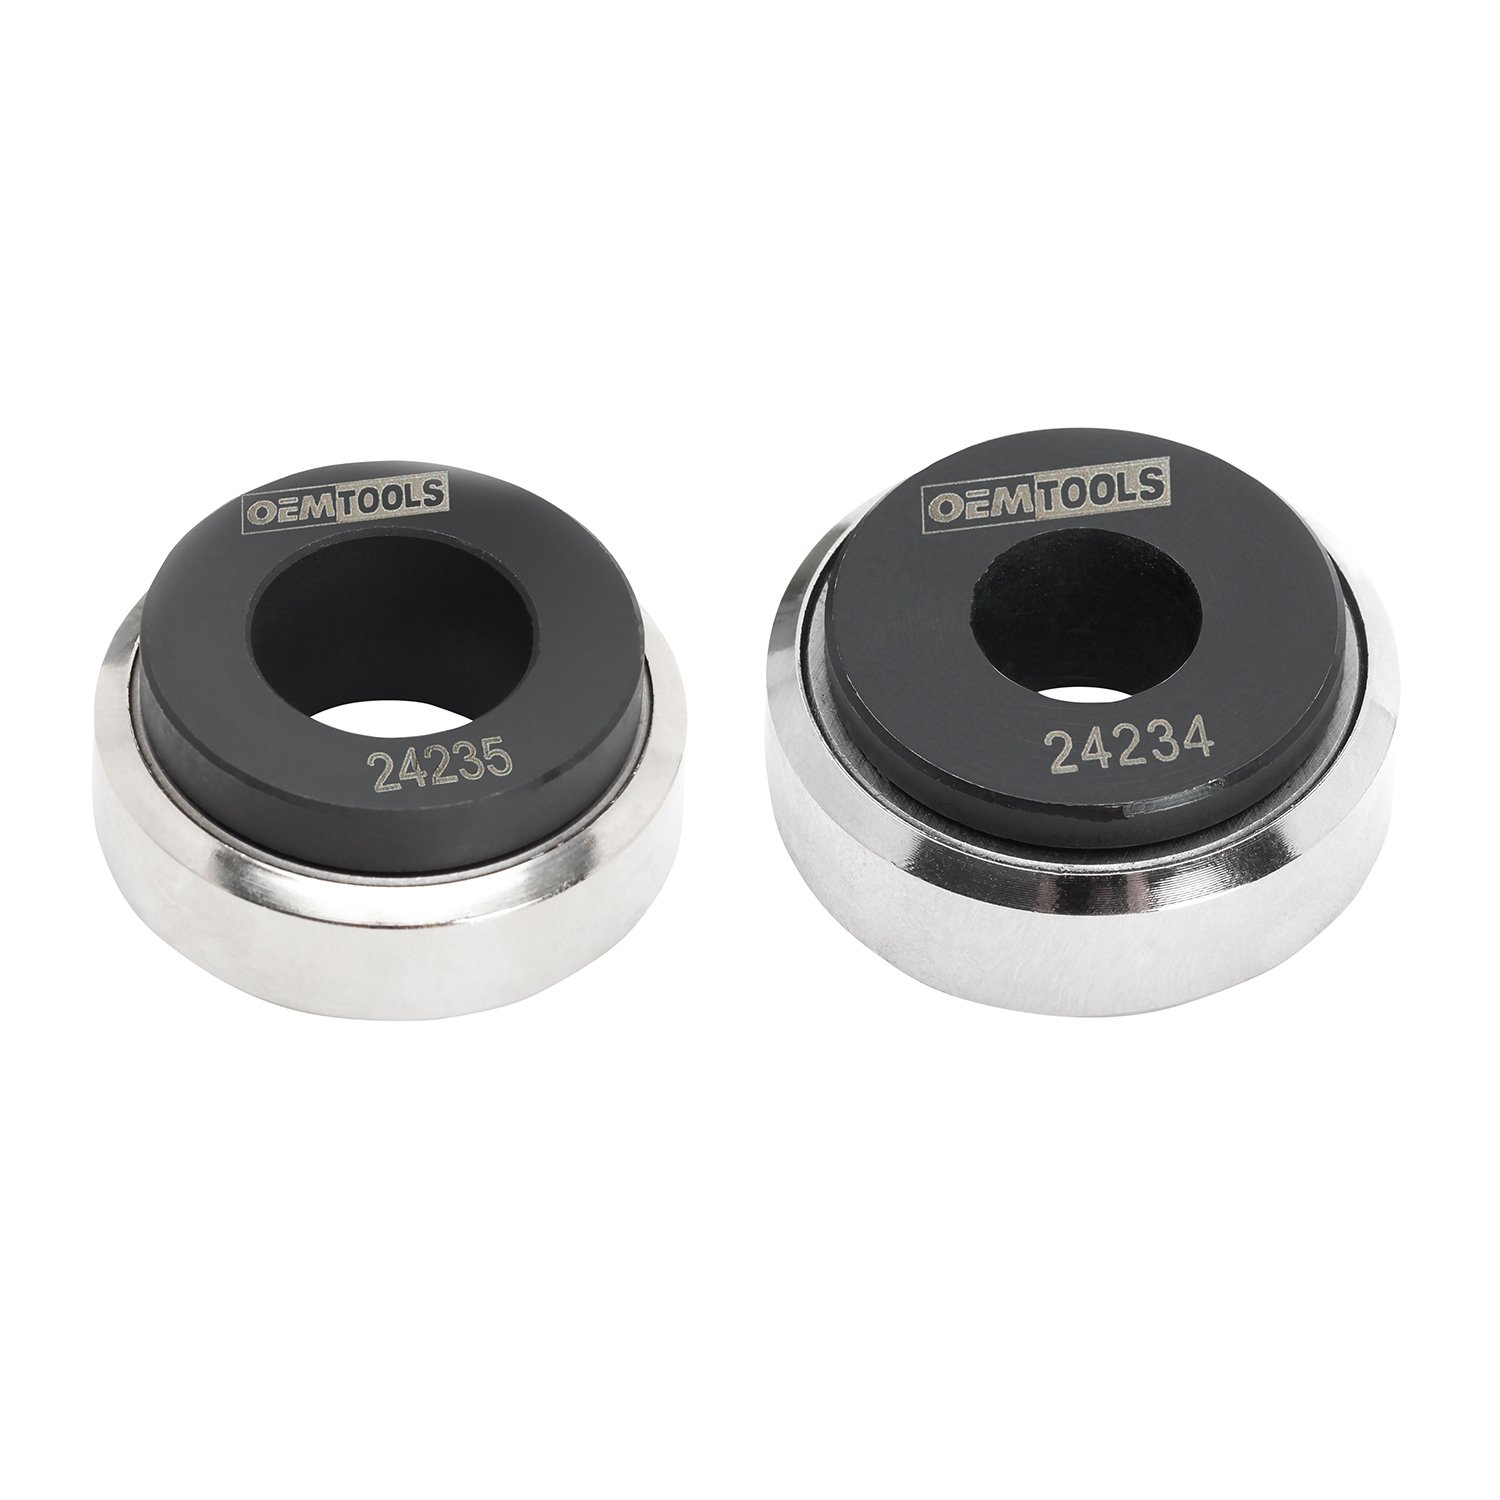 OEMTOOLS 24236 Wheel Stud Installer Set for Cars and Trucks by OEMTOOLS